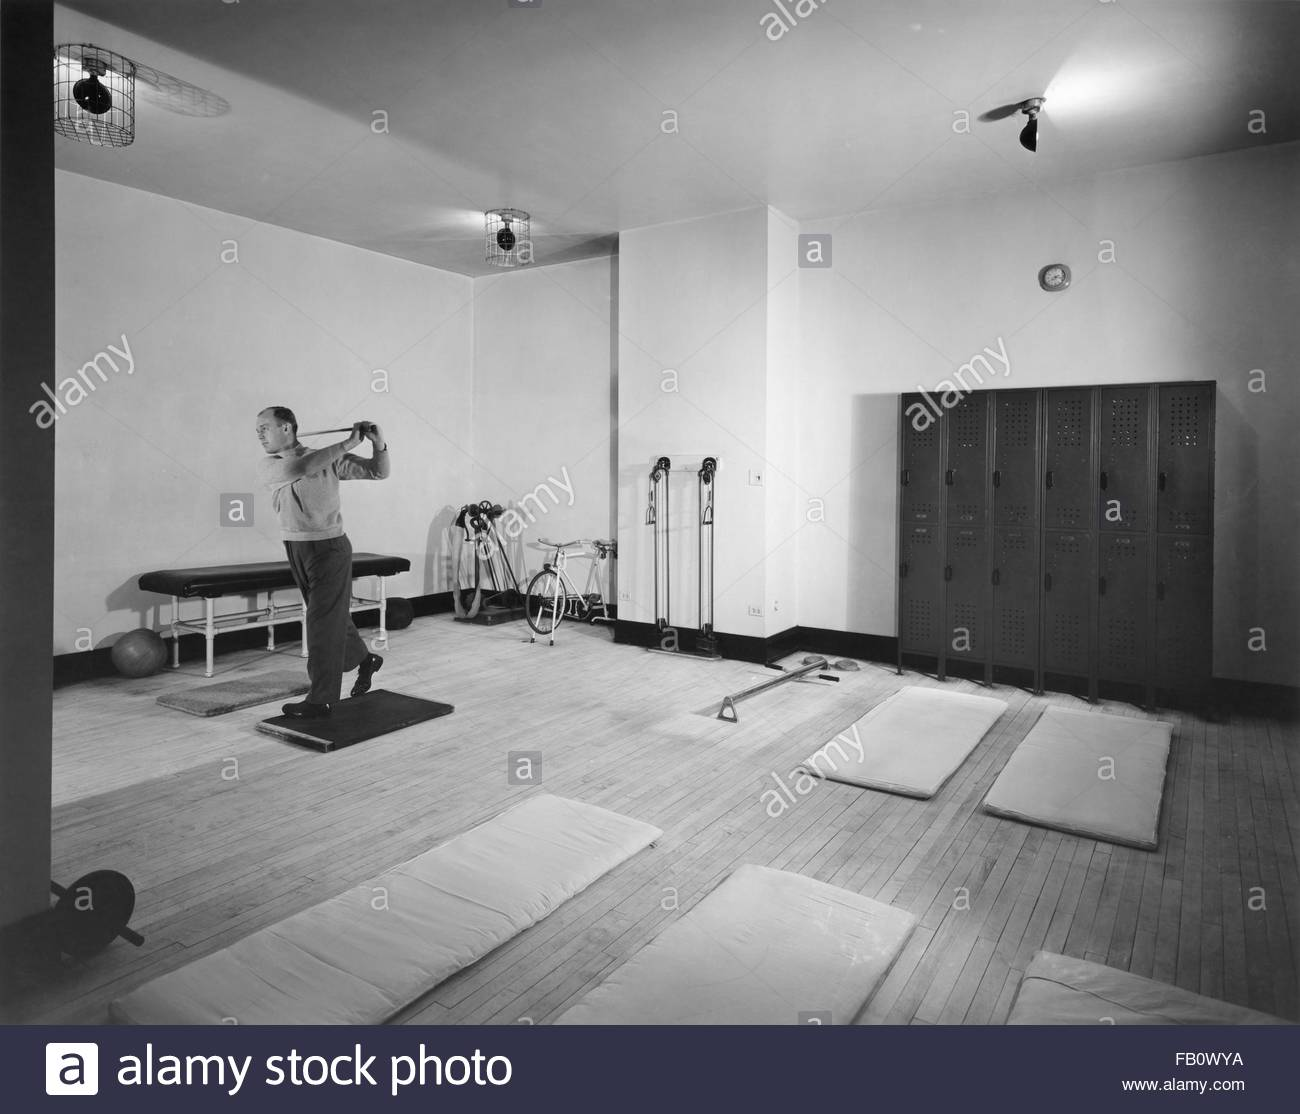 Field Building in Chicago (Ill.), interior views, 1943 Mar. 9. Interior, exercise room (from print), Image forms - Stock Image